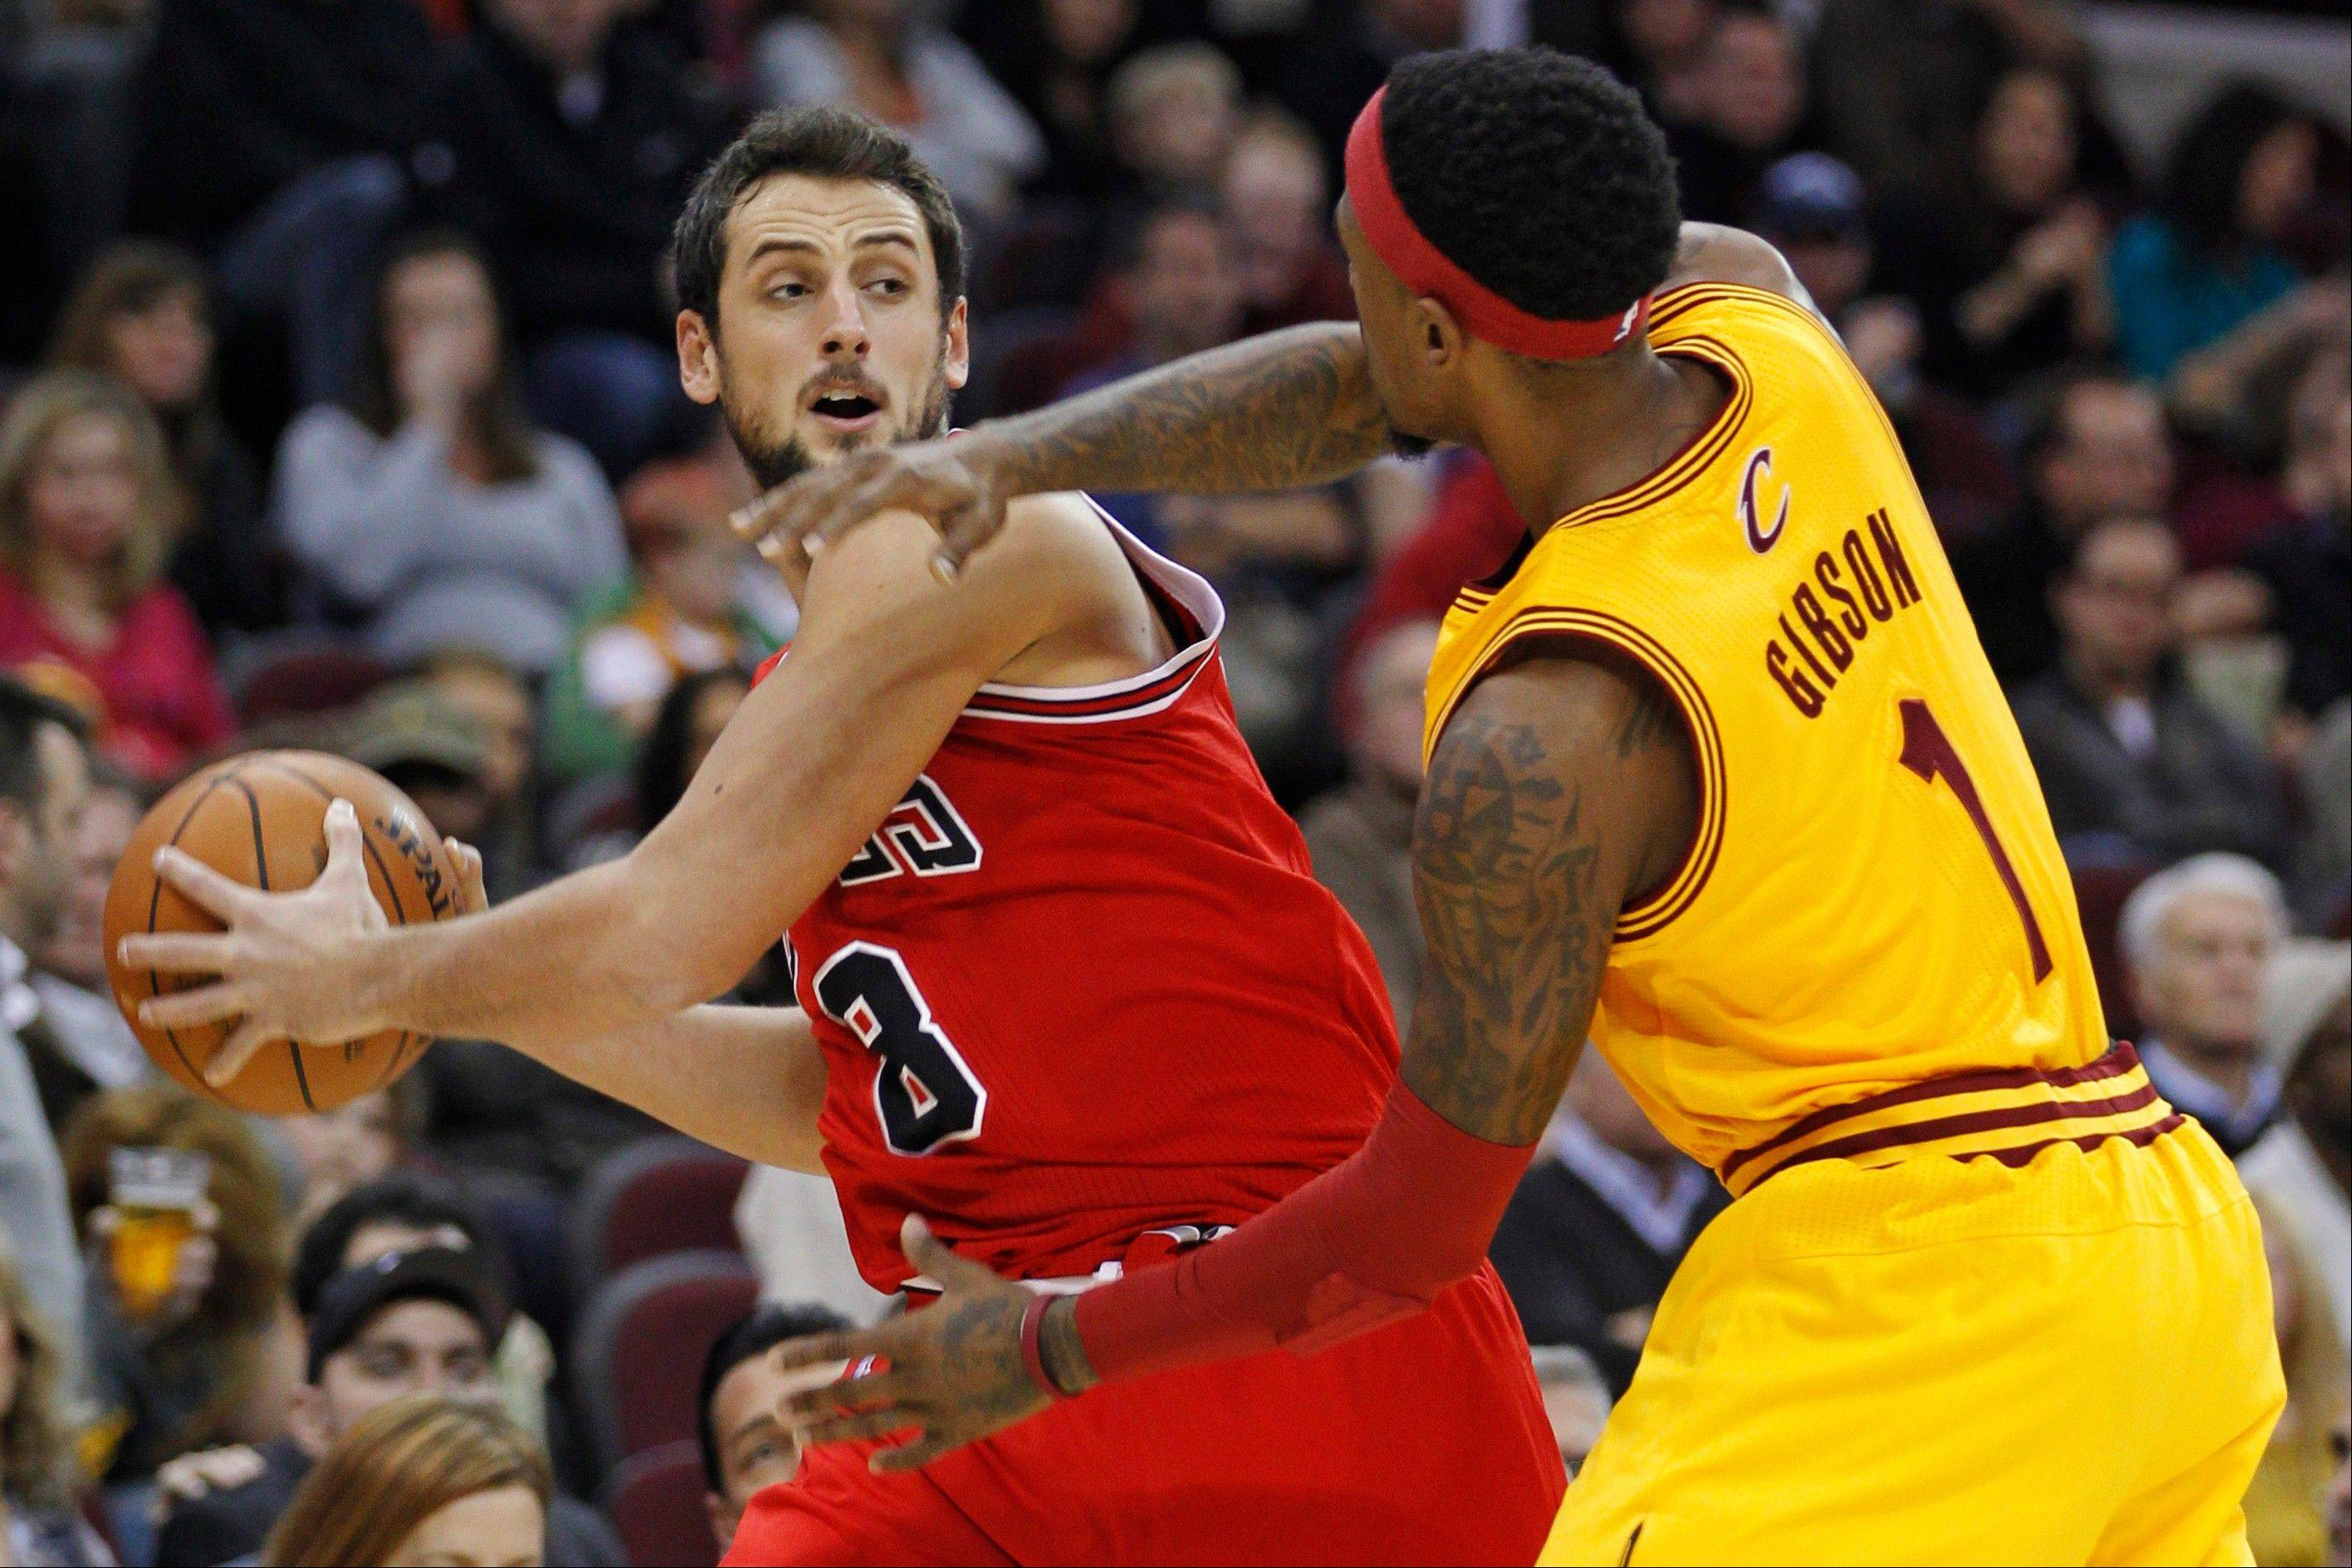 The Bulls' Marco Belinelli is pressured by Cleveland's Daniel Gibson in the first quarter Wednesday night in Cleveland. Belinelli finished with 23 points in the Bulls' 95-85 victory.